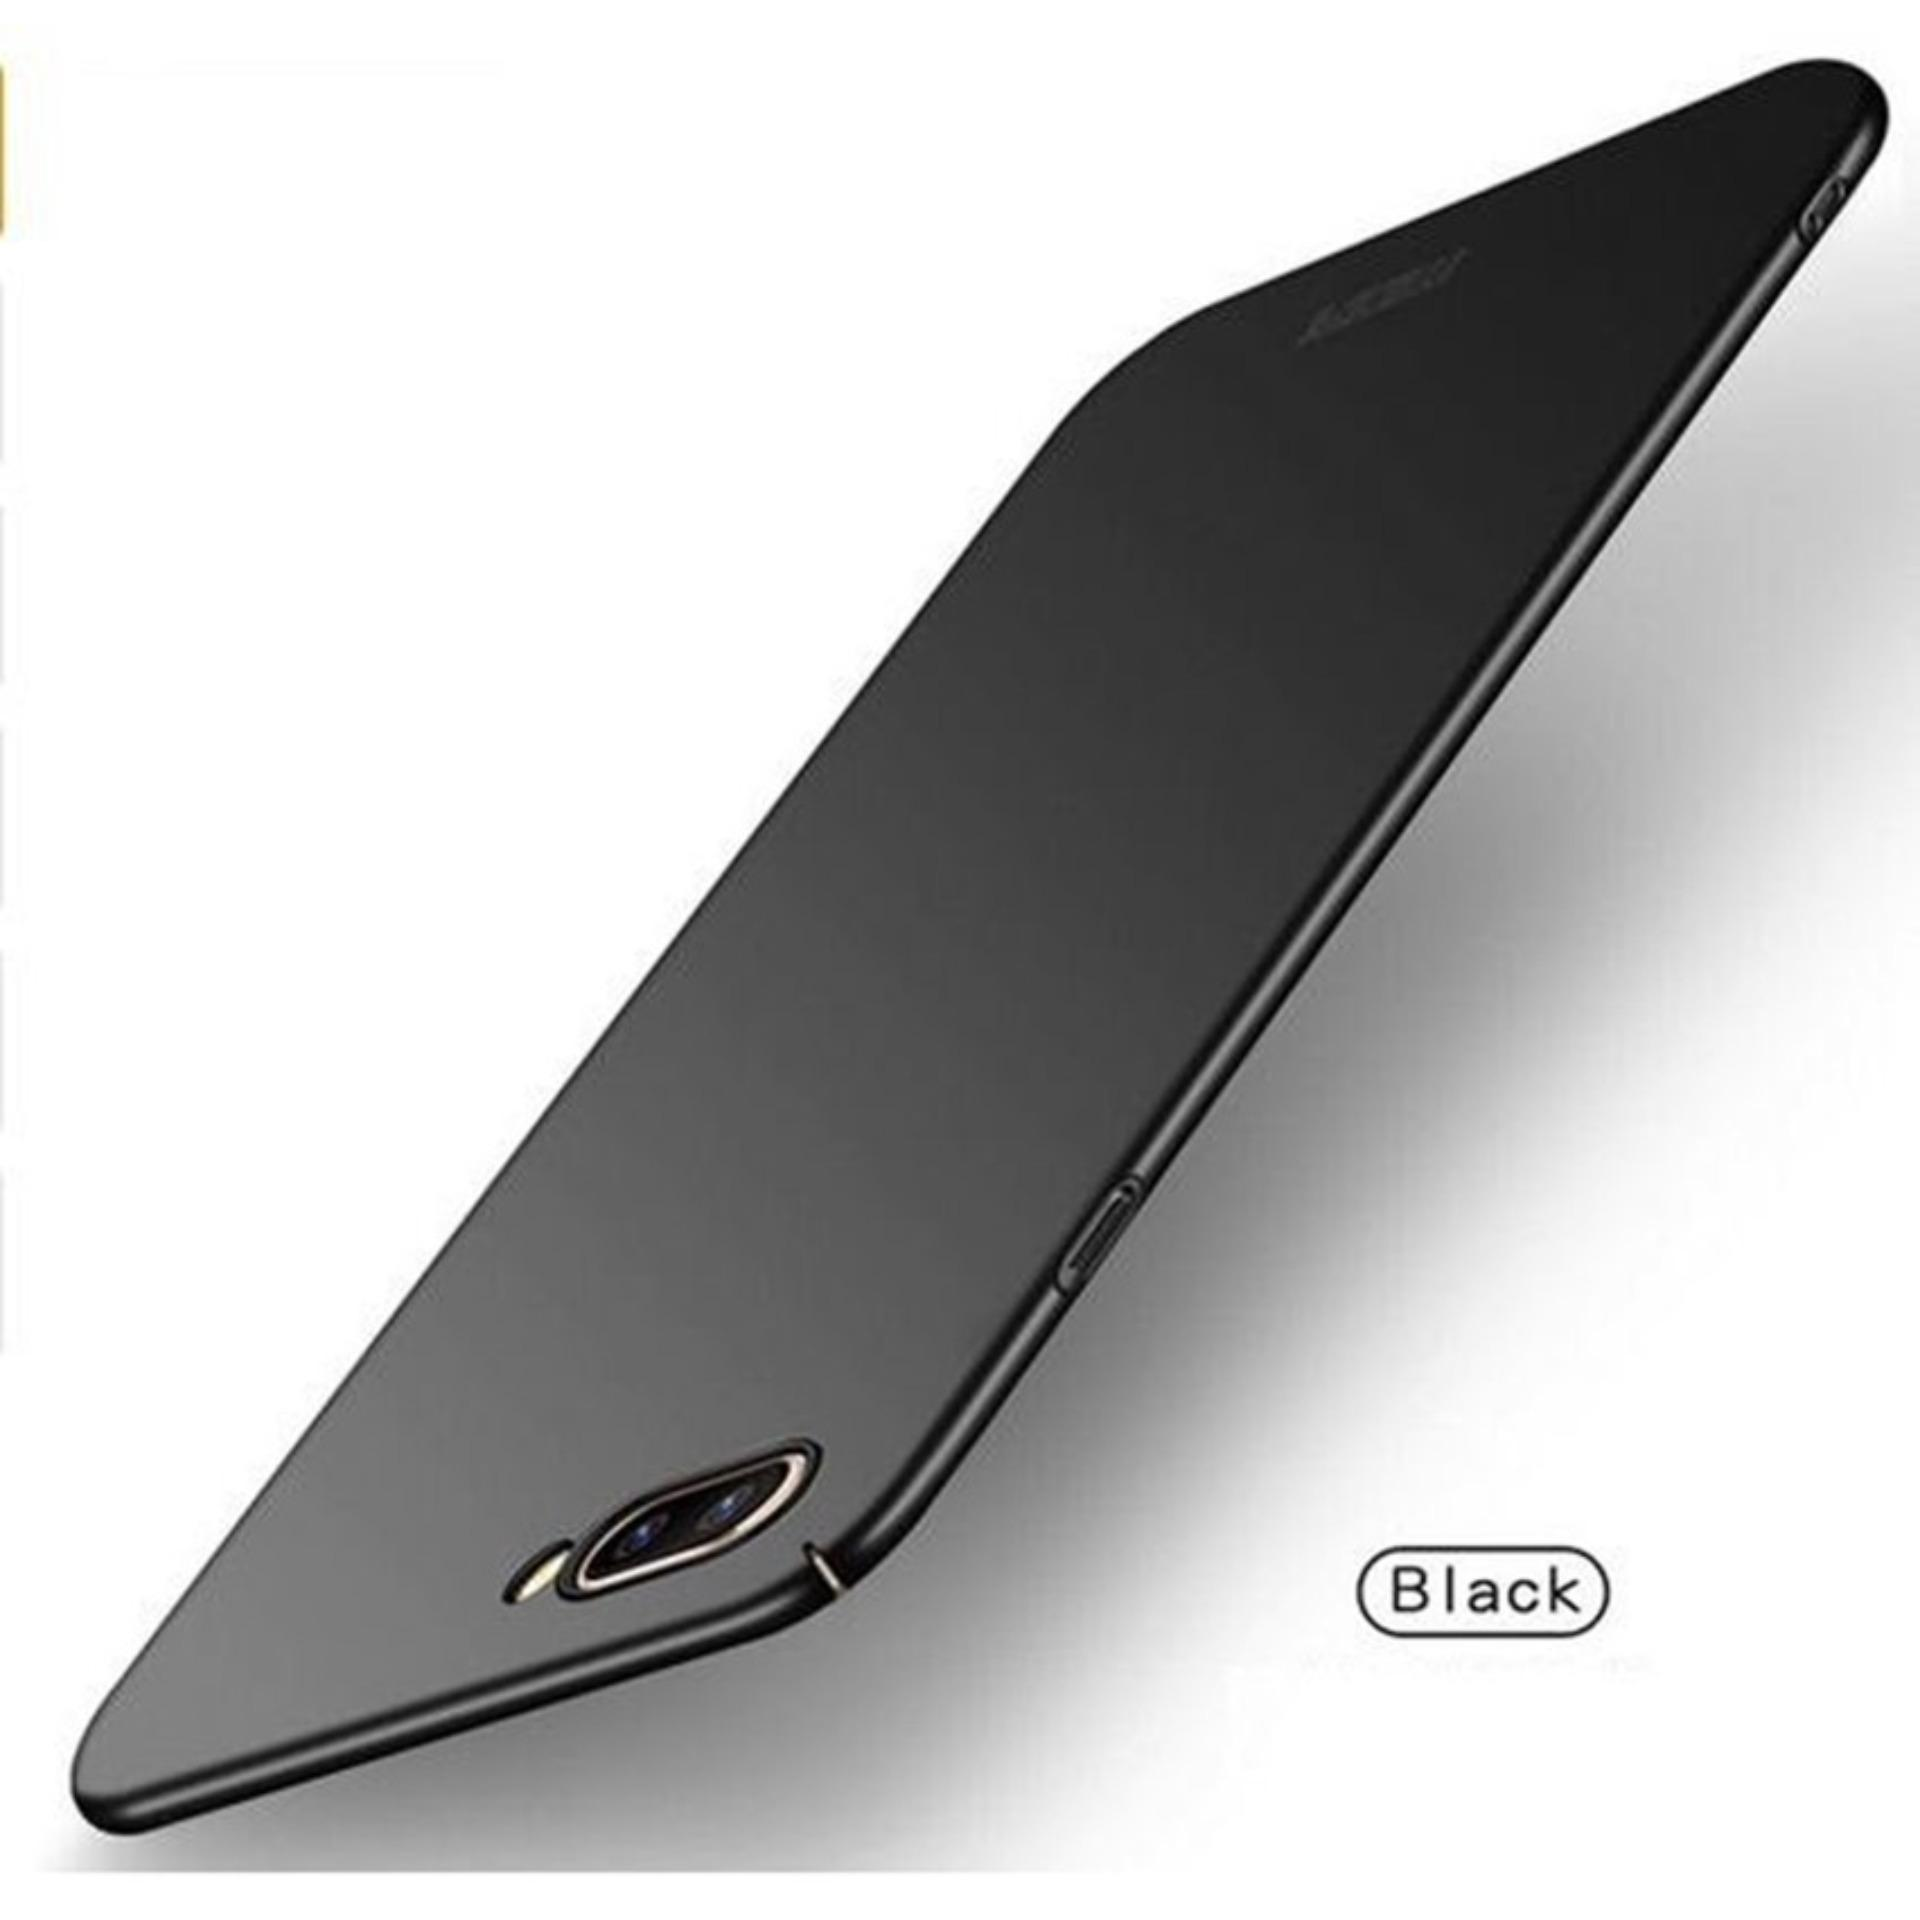 Buy Sell Cheapest Casing Housing Back Best Quality Product Deals Original Fullset Iphone 5g Black Case Hard Frosted Pc Cover 360 Full Protection For Oppo A3s A5